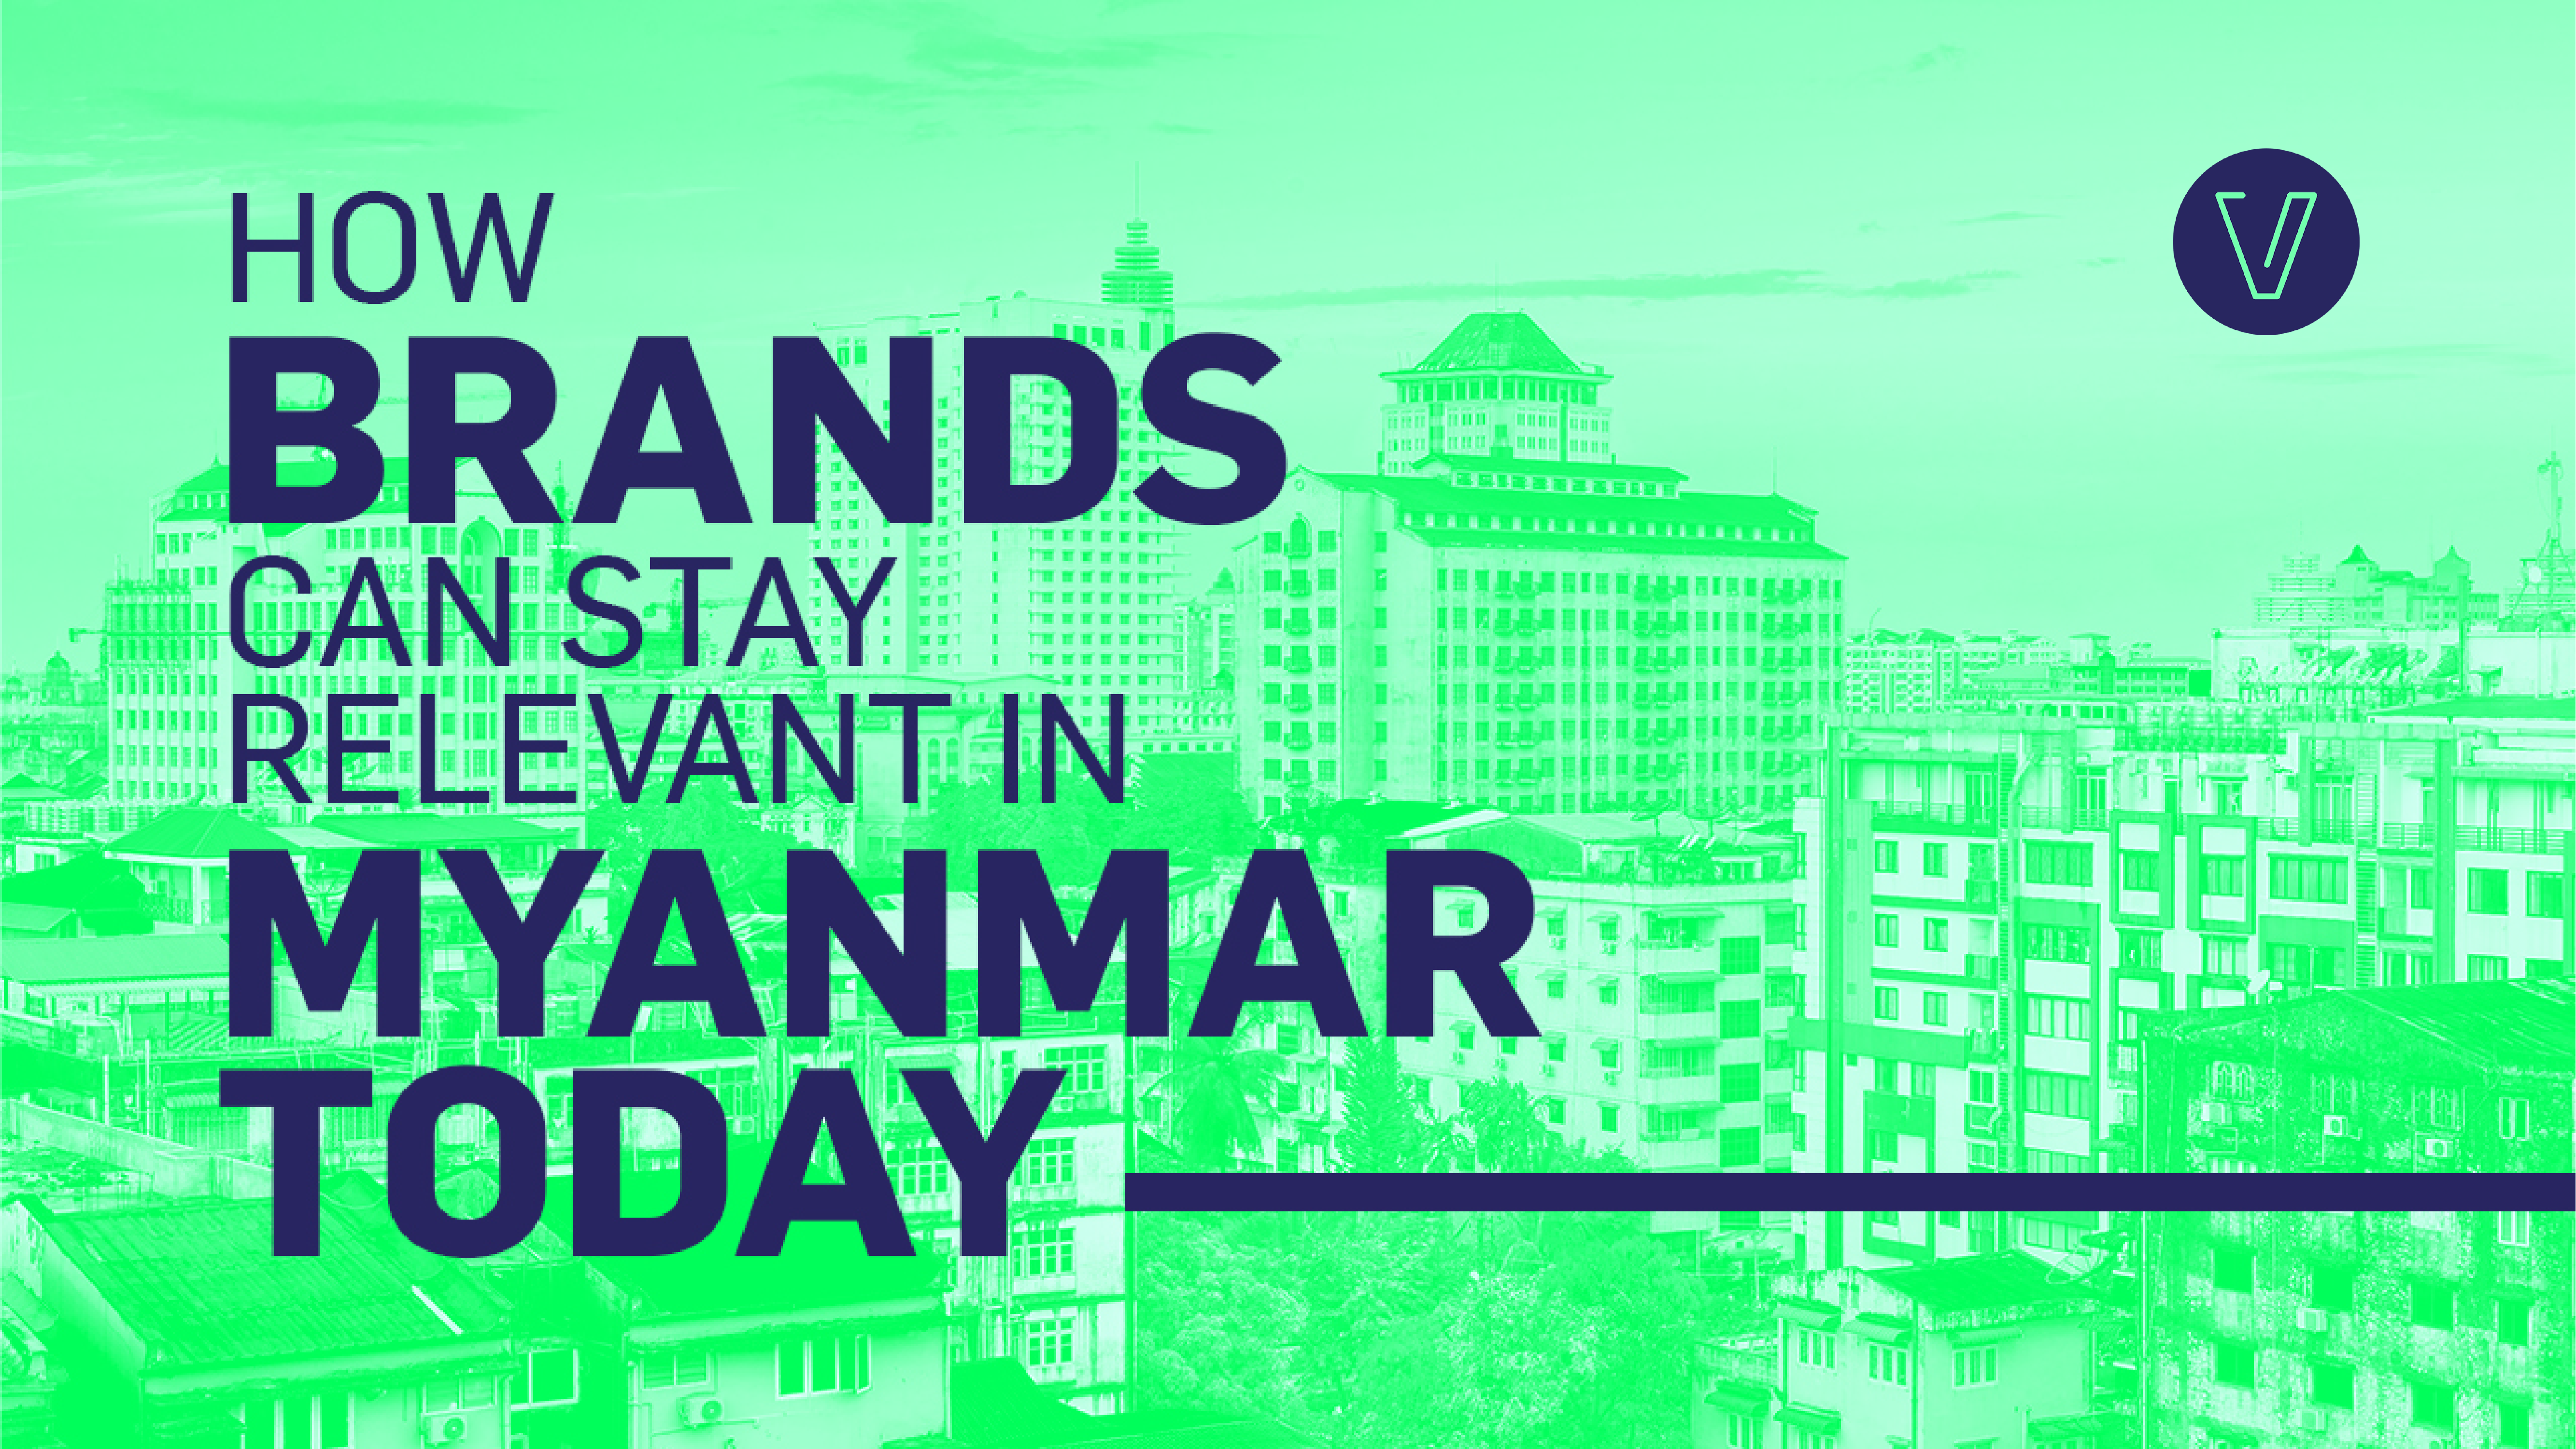 How brands can stay relevant in Myanmar today, and what brand managers can do to help them